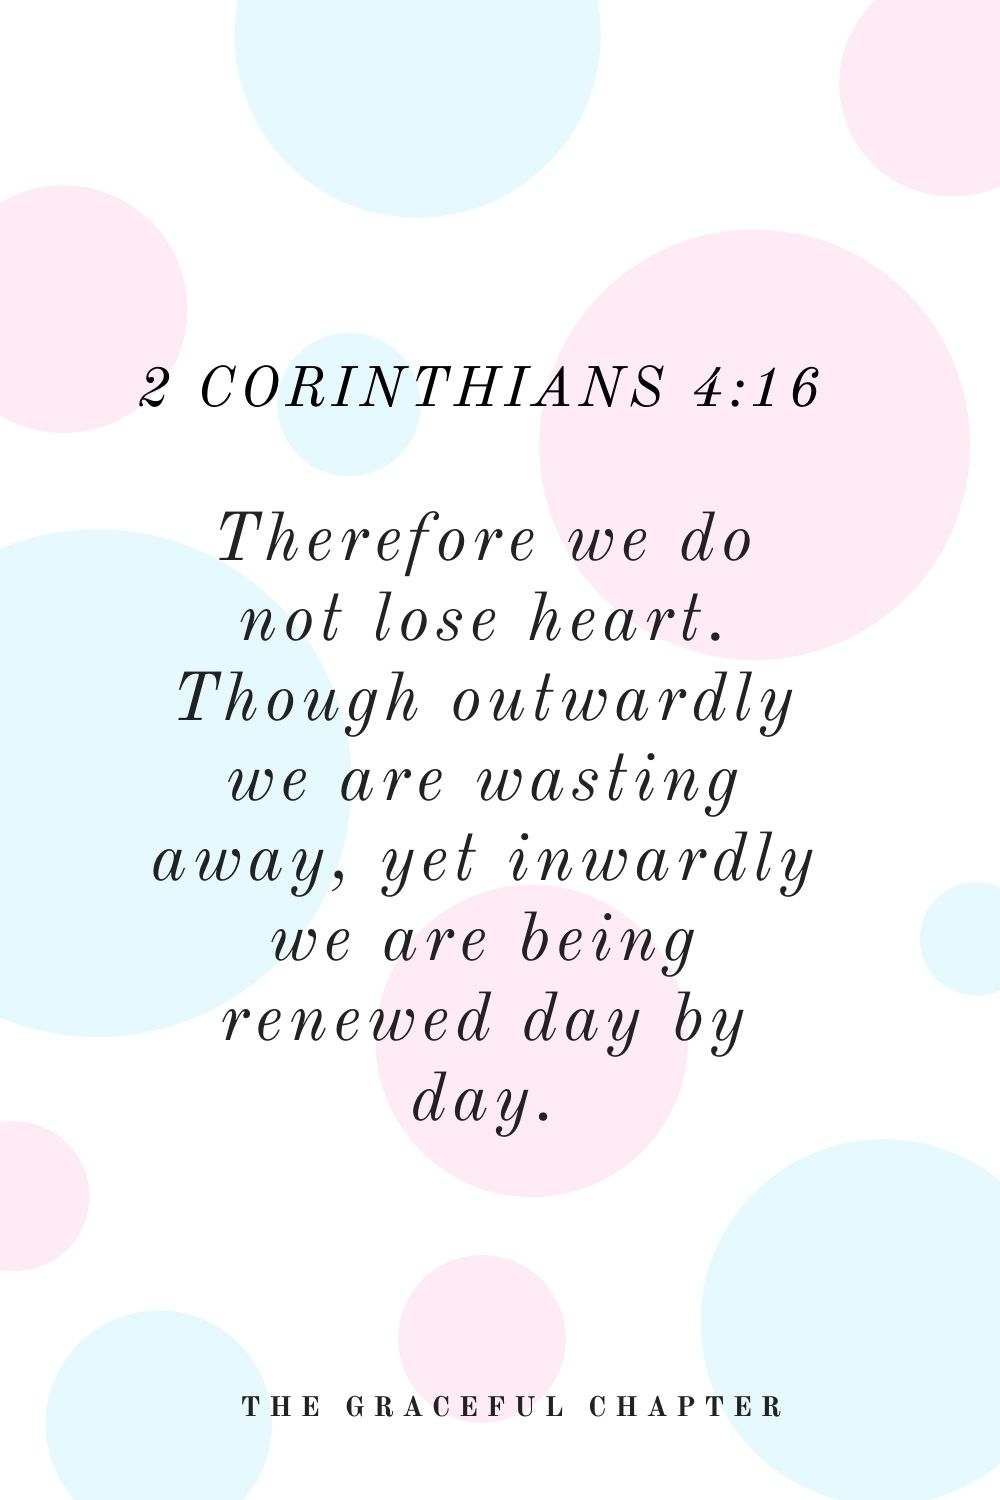 Therefore we do not lose heart. Though outwardly we are wasting away, yet inwardly we are being renewed day by day. 2 Corinthians 4:16